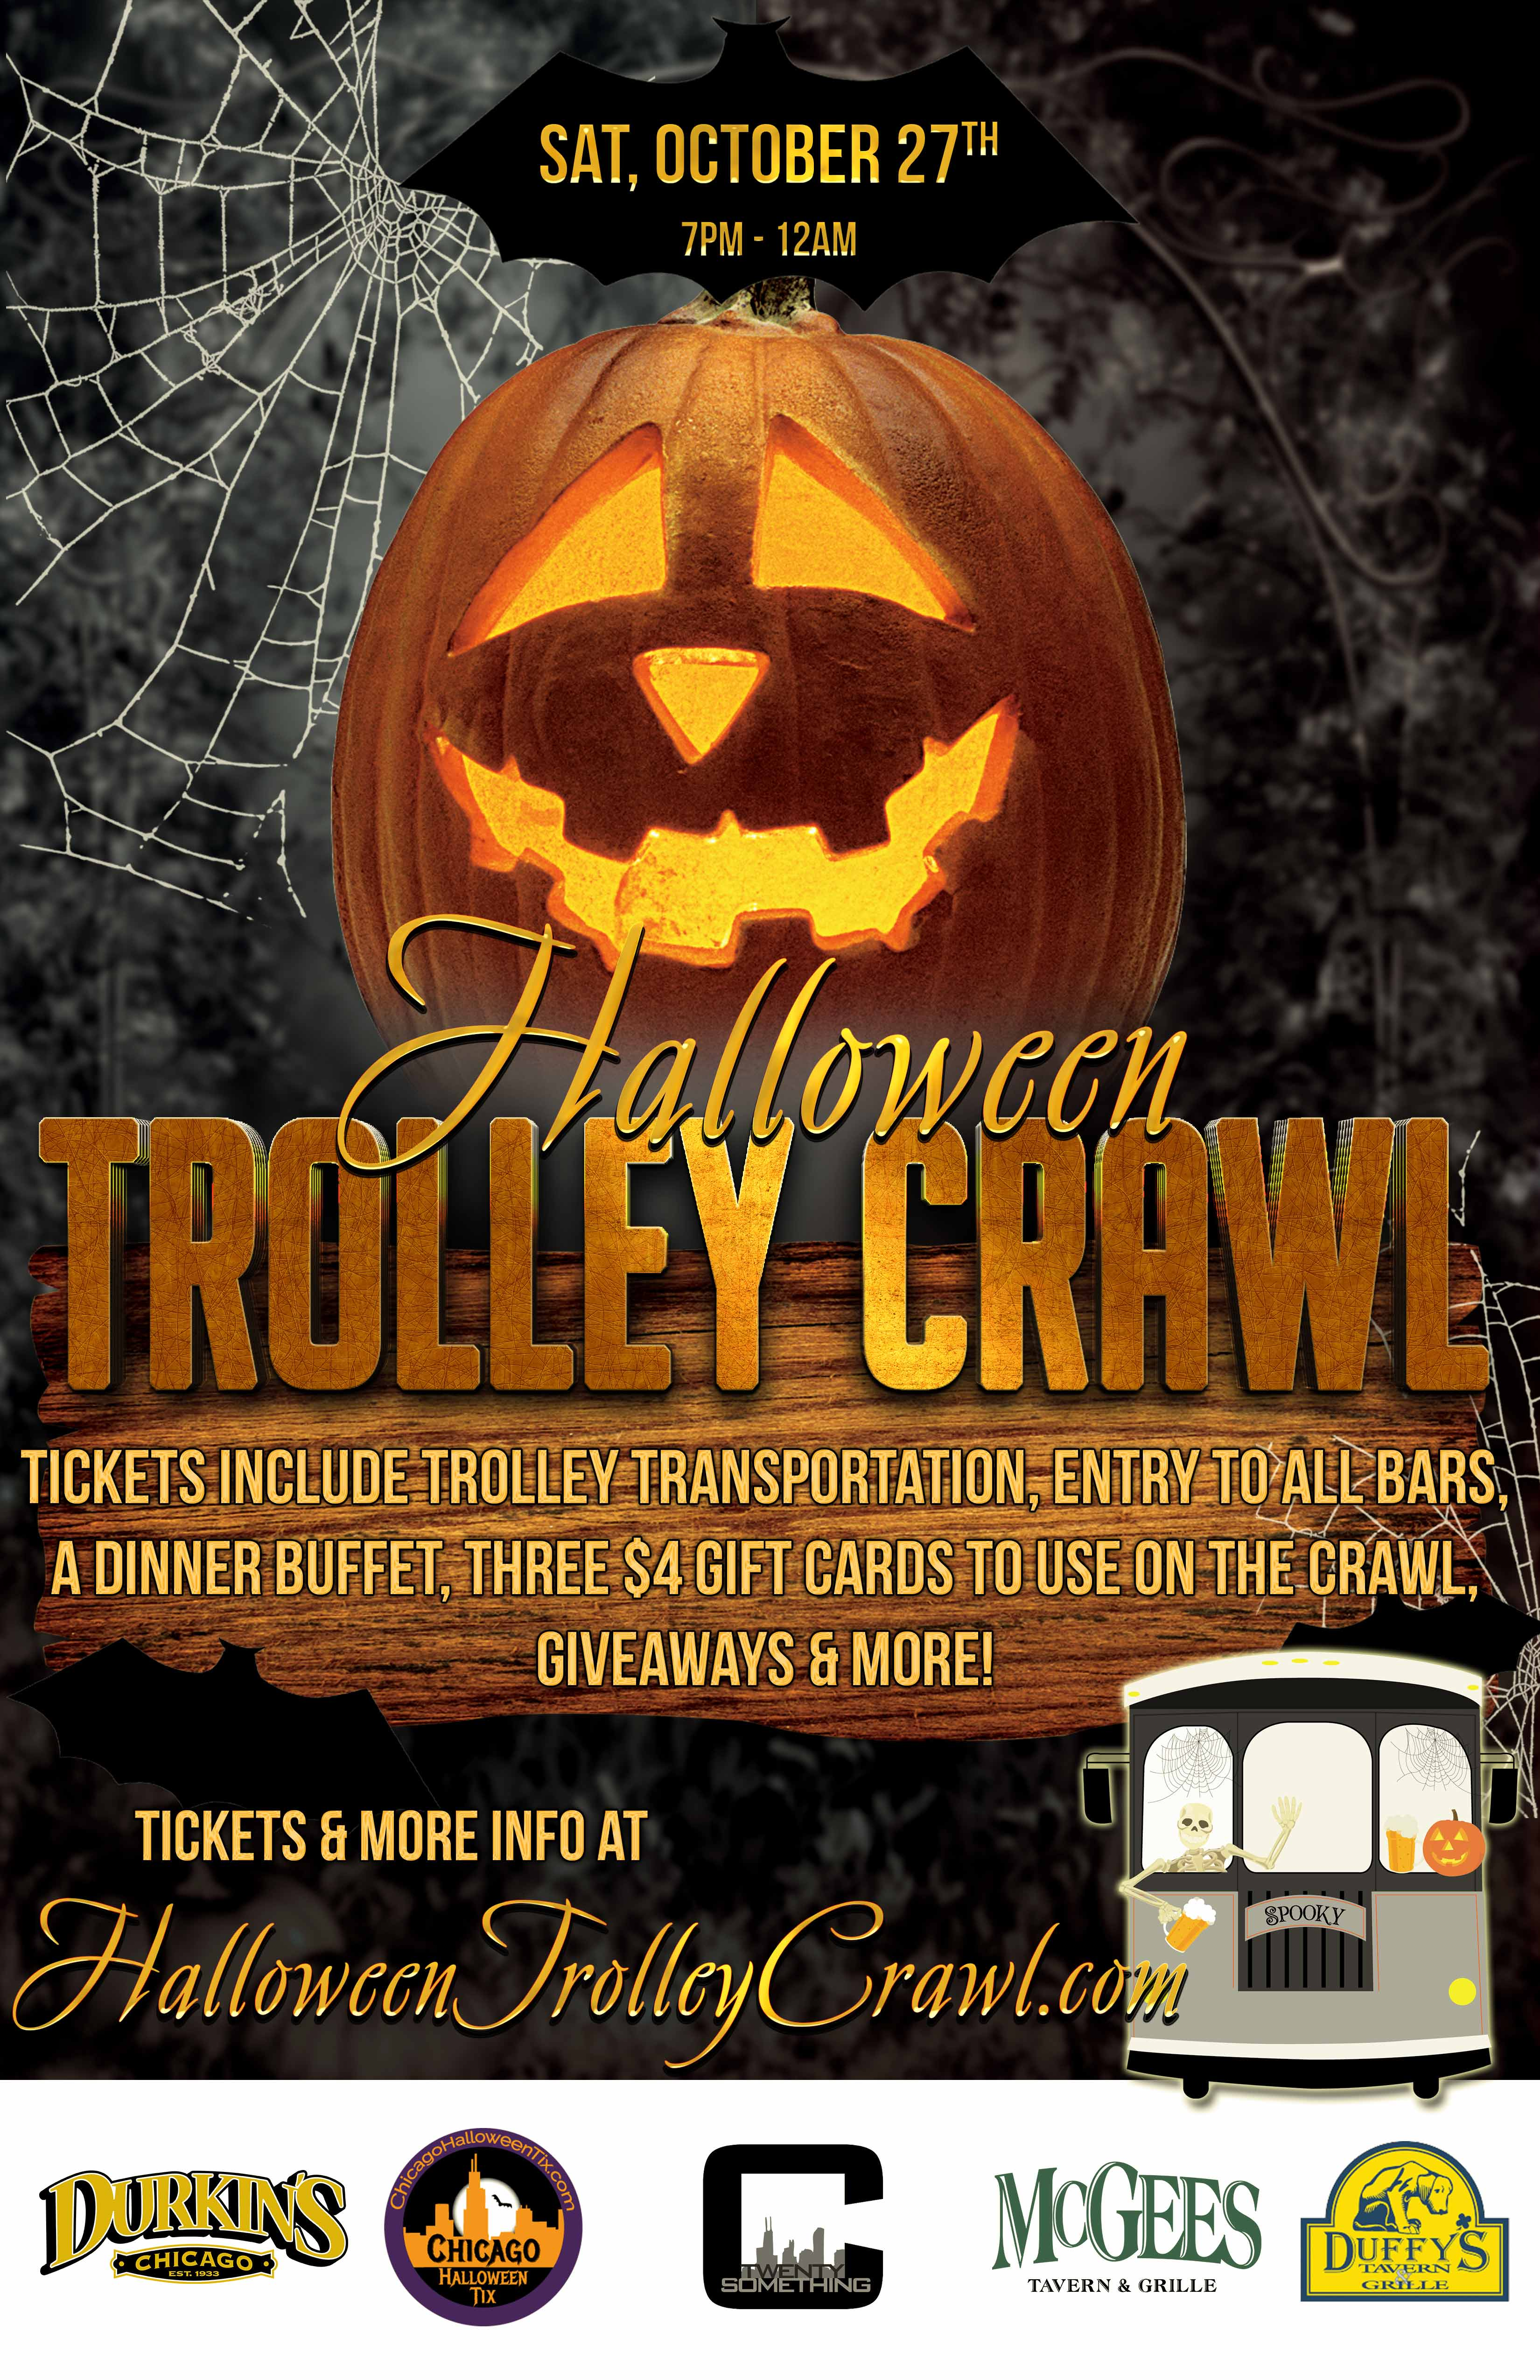 Halloween Trolley Crawl - Tickets Include Trolley Transportation, Entry To All Bars, A Dinner Buffet, Three $4 Gift Cards To Use On The Crawl, Giveaways & More!